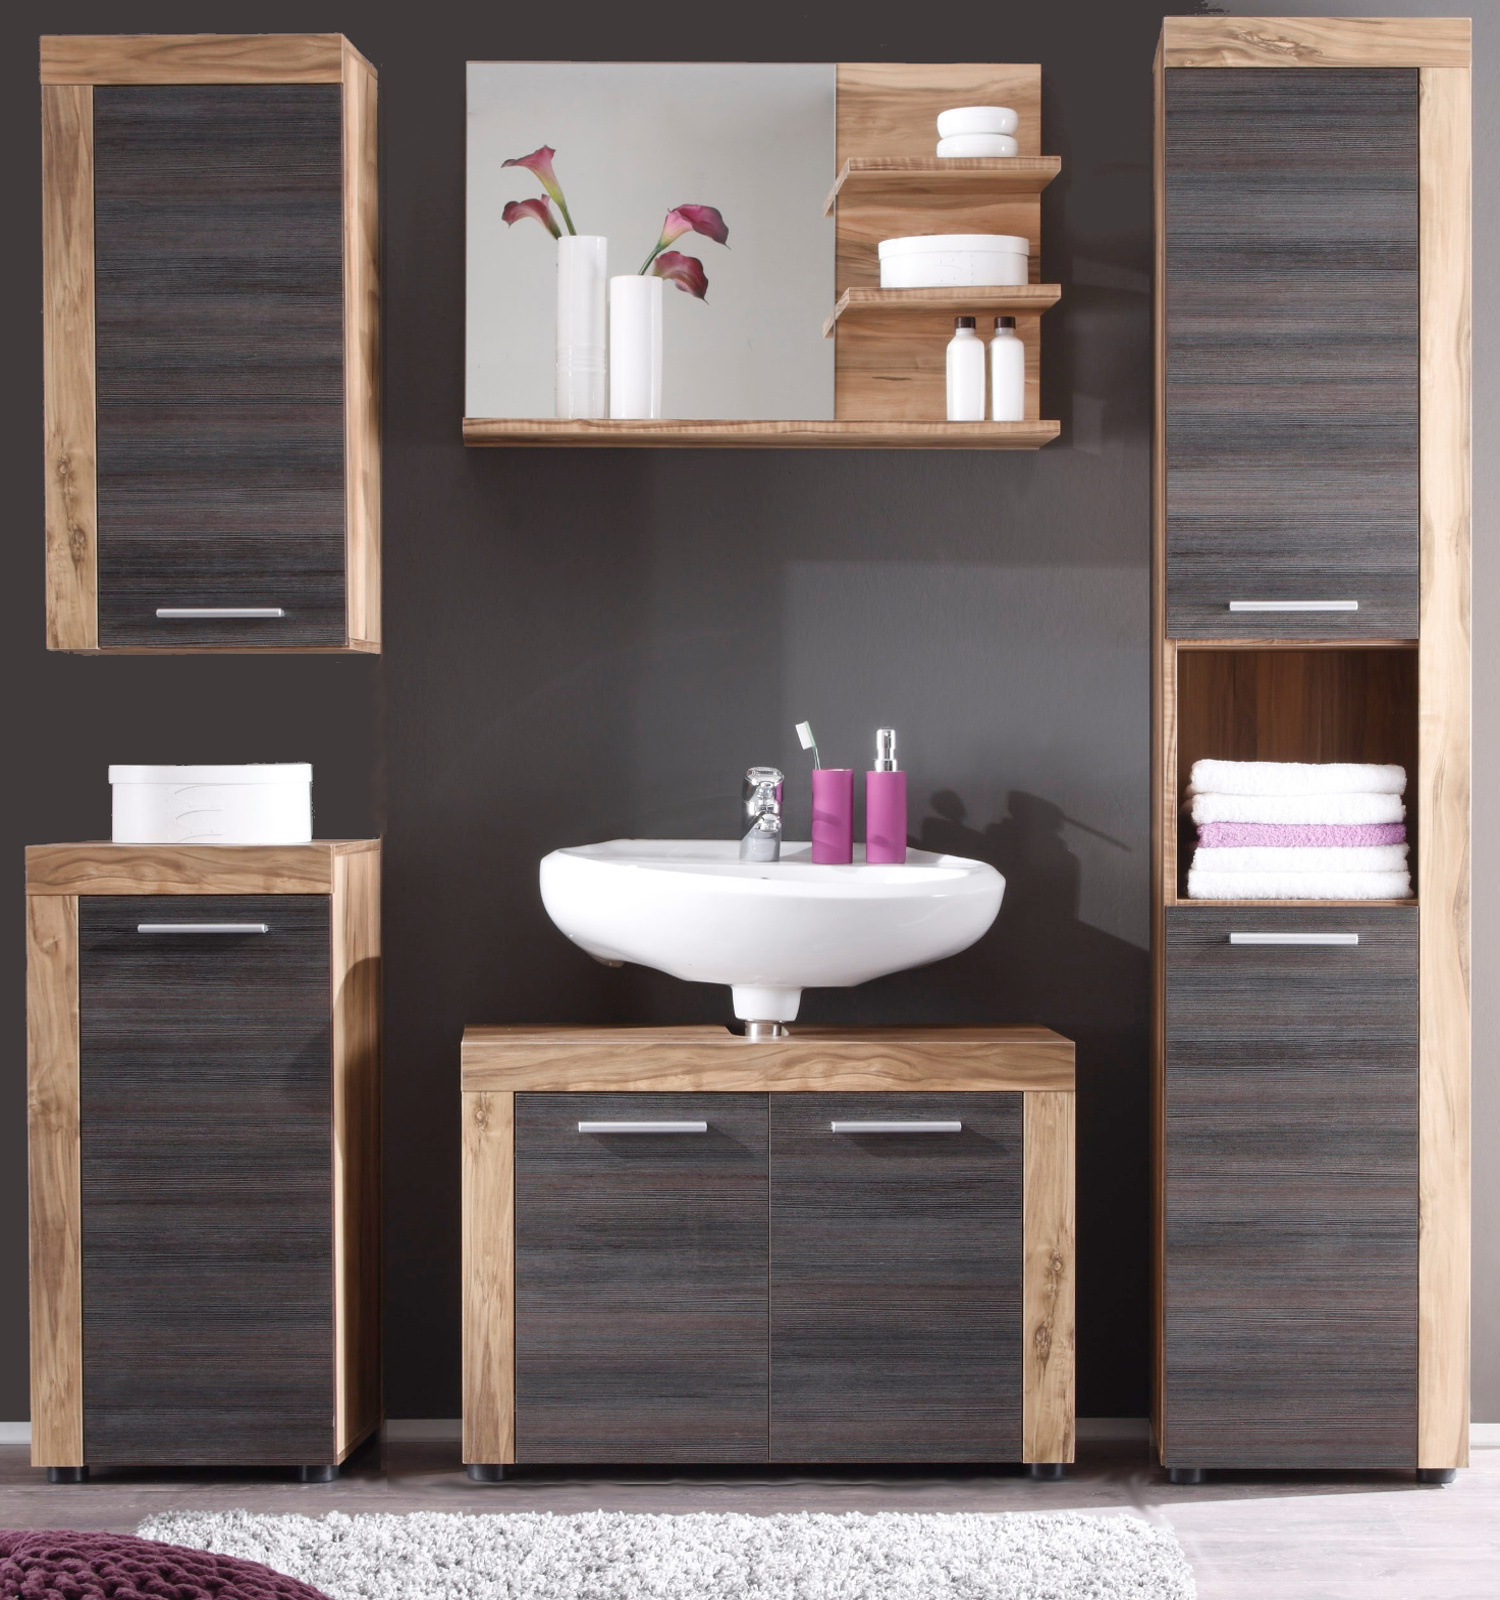 badm bel cancun nussbaum g nstig online kaufen. Black Bedroom Furniture Sets. Home Design Ideas